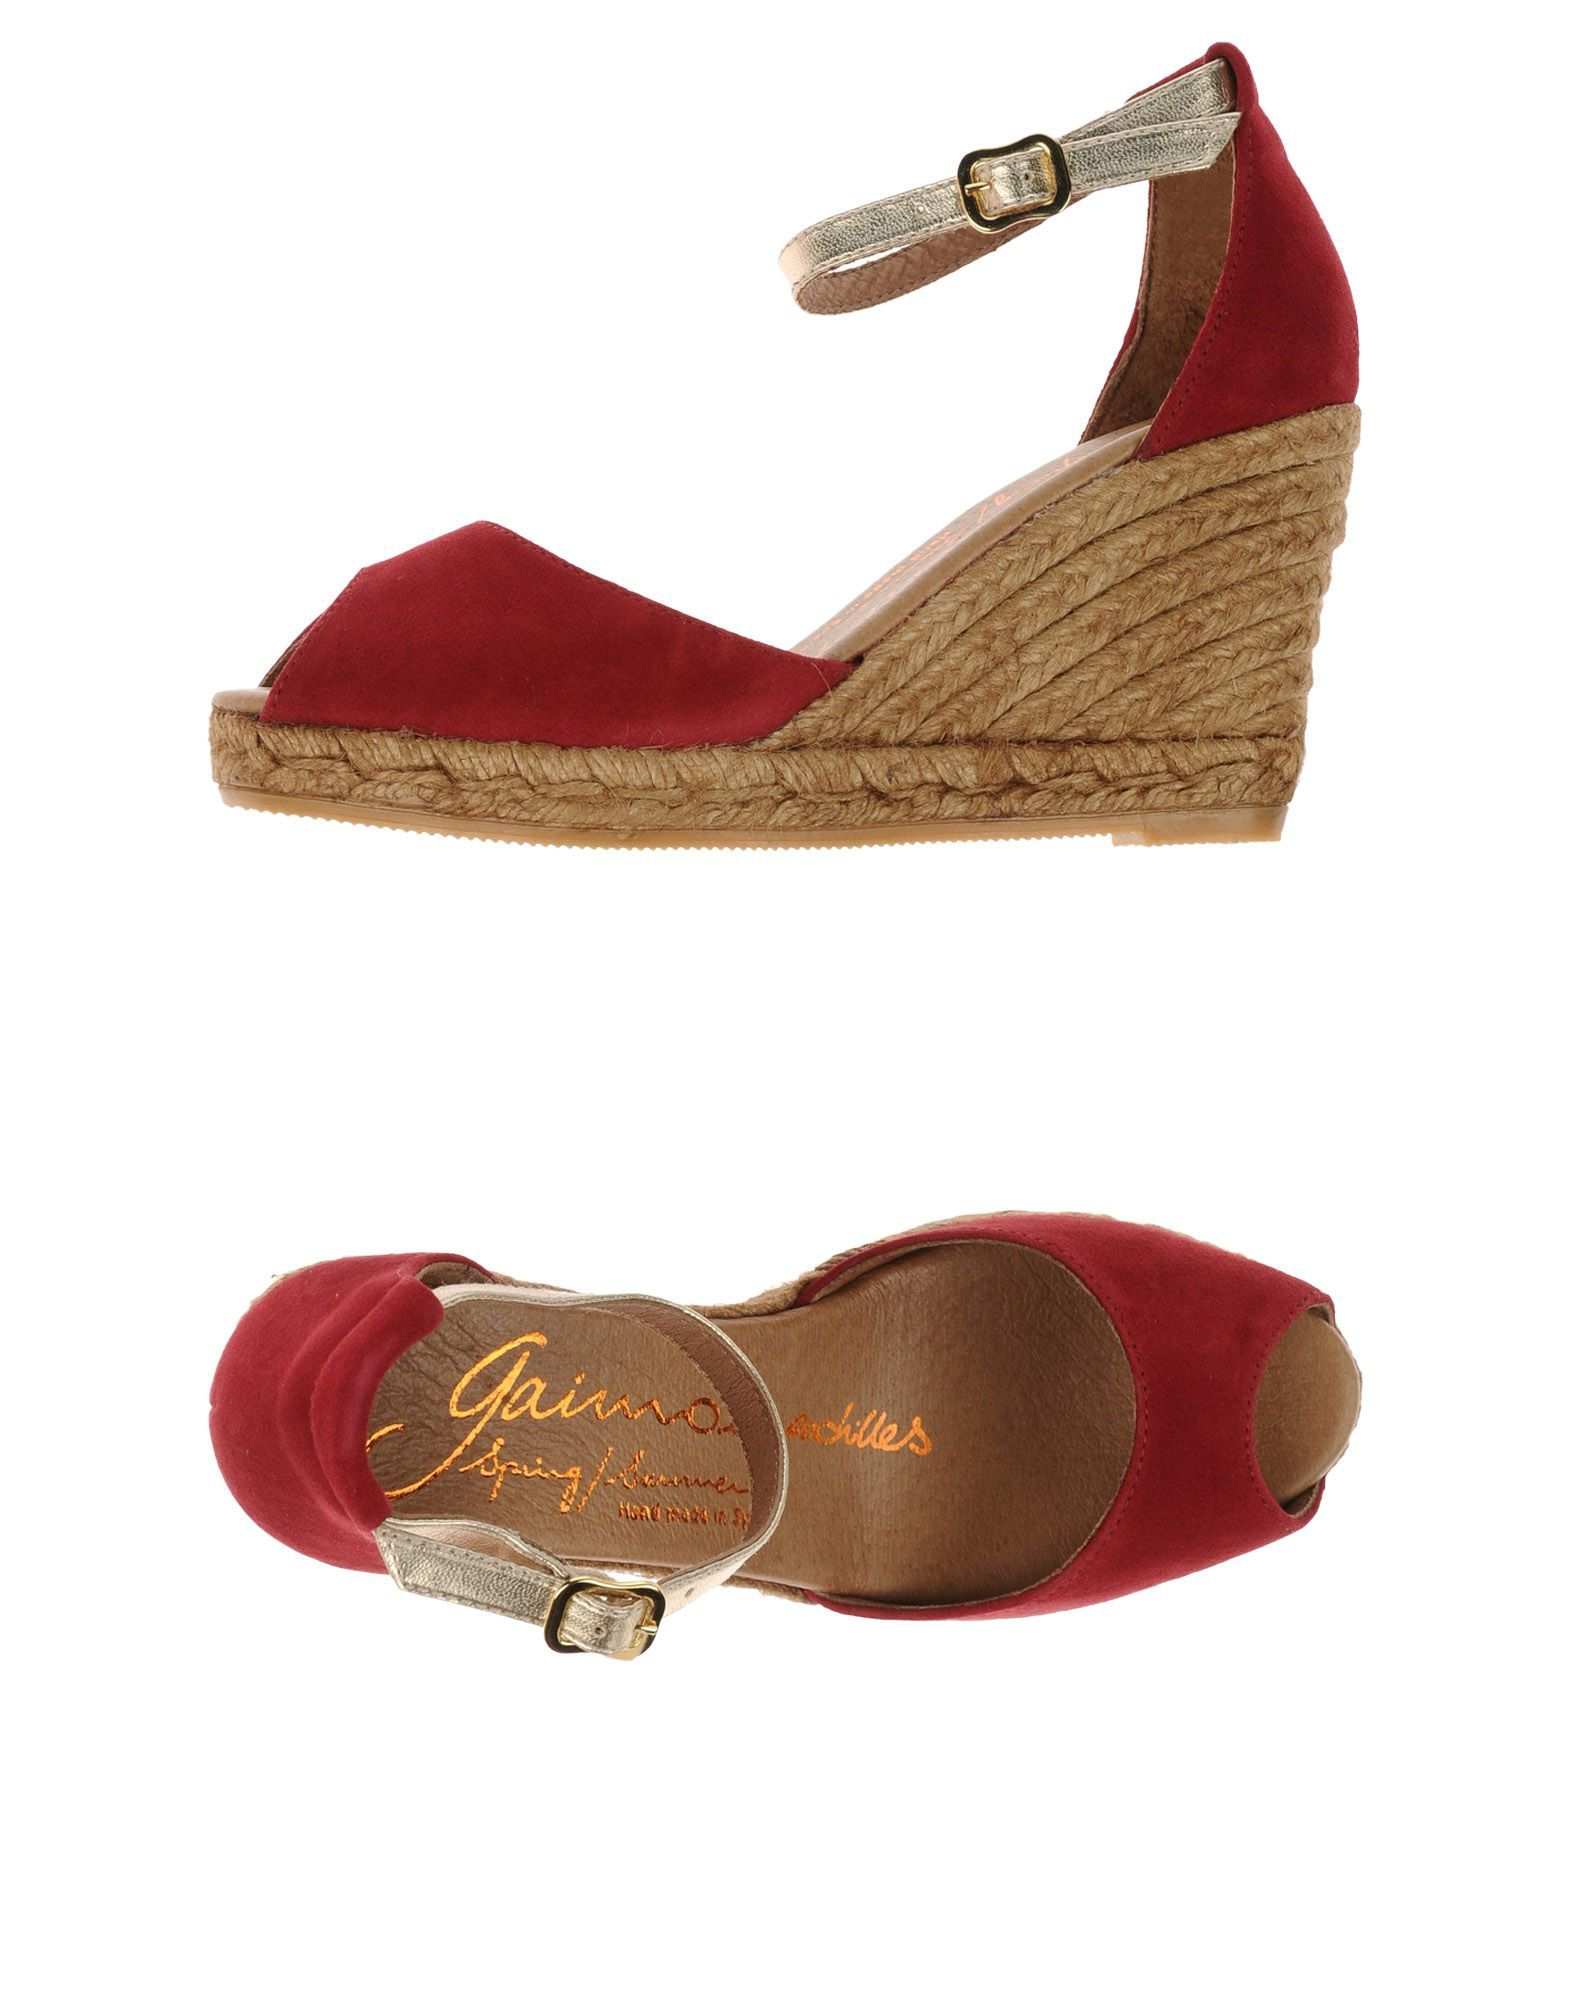 05853ea8743 Red suede peep-toe wedge espadrilles by Gaimo Espadrilles. Available ...